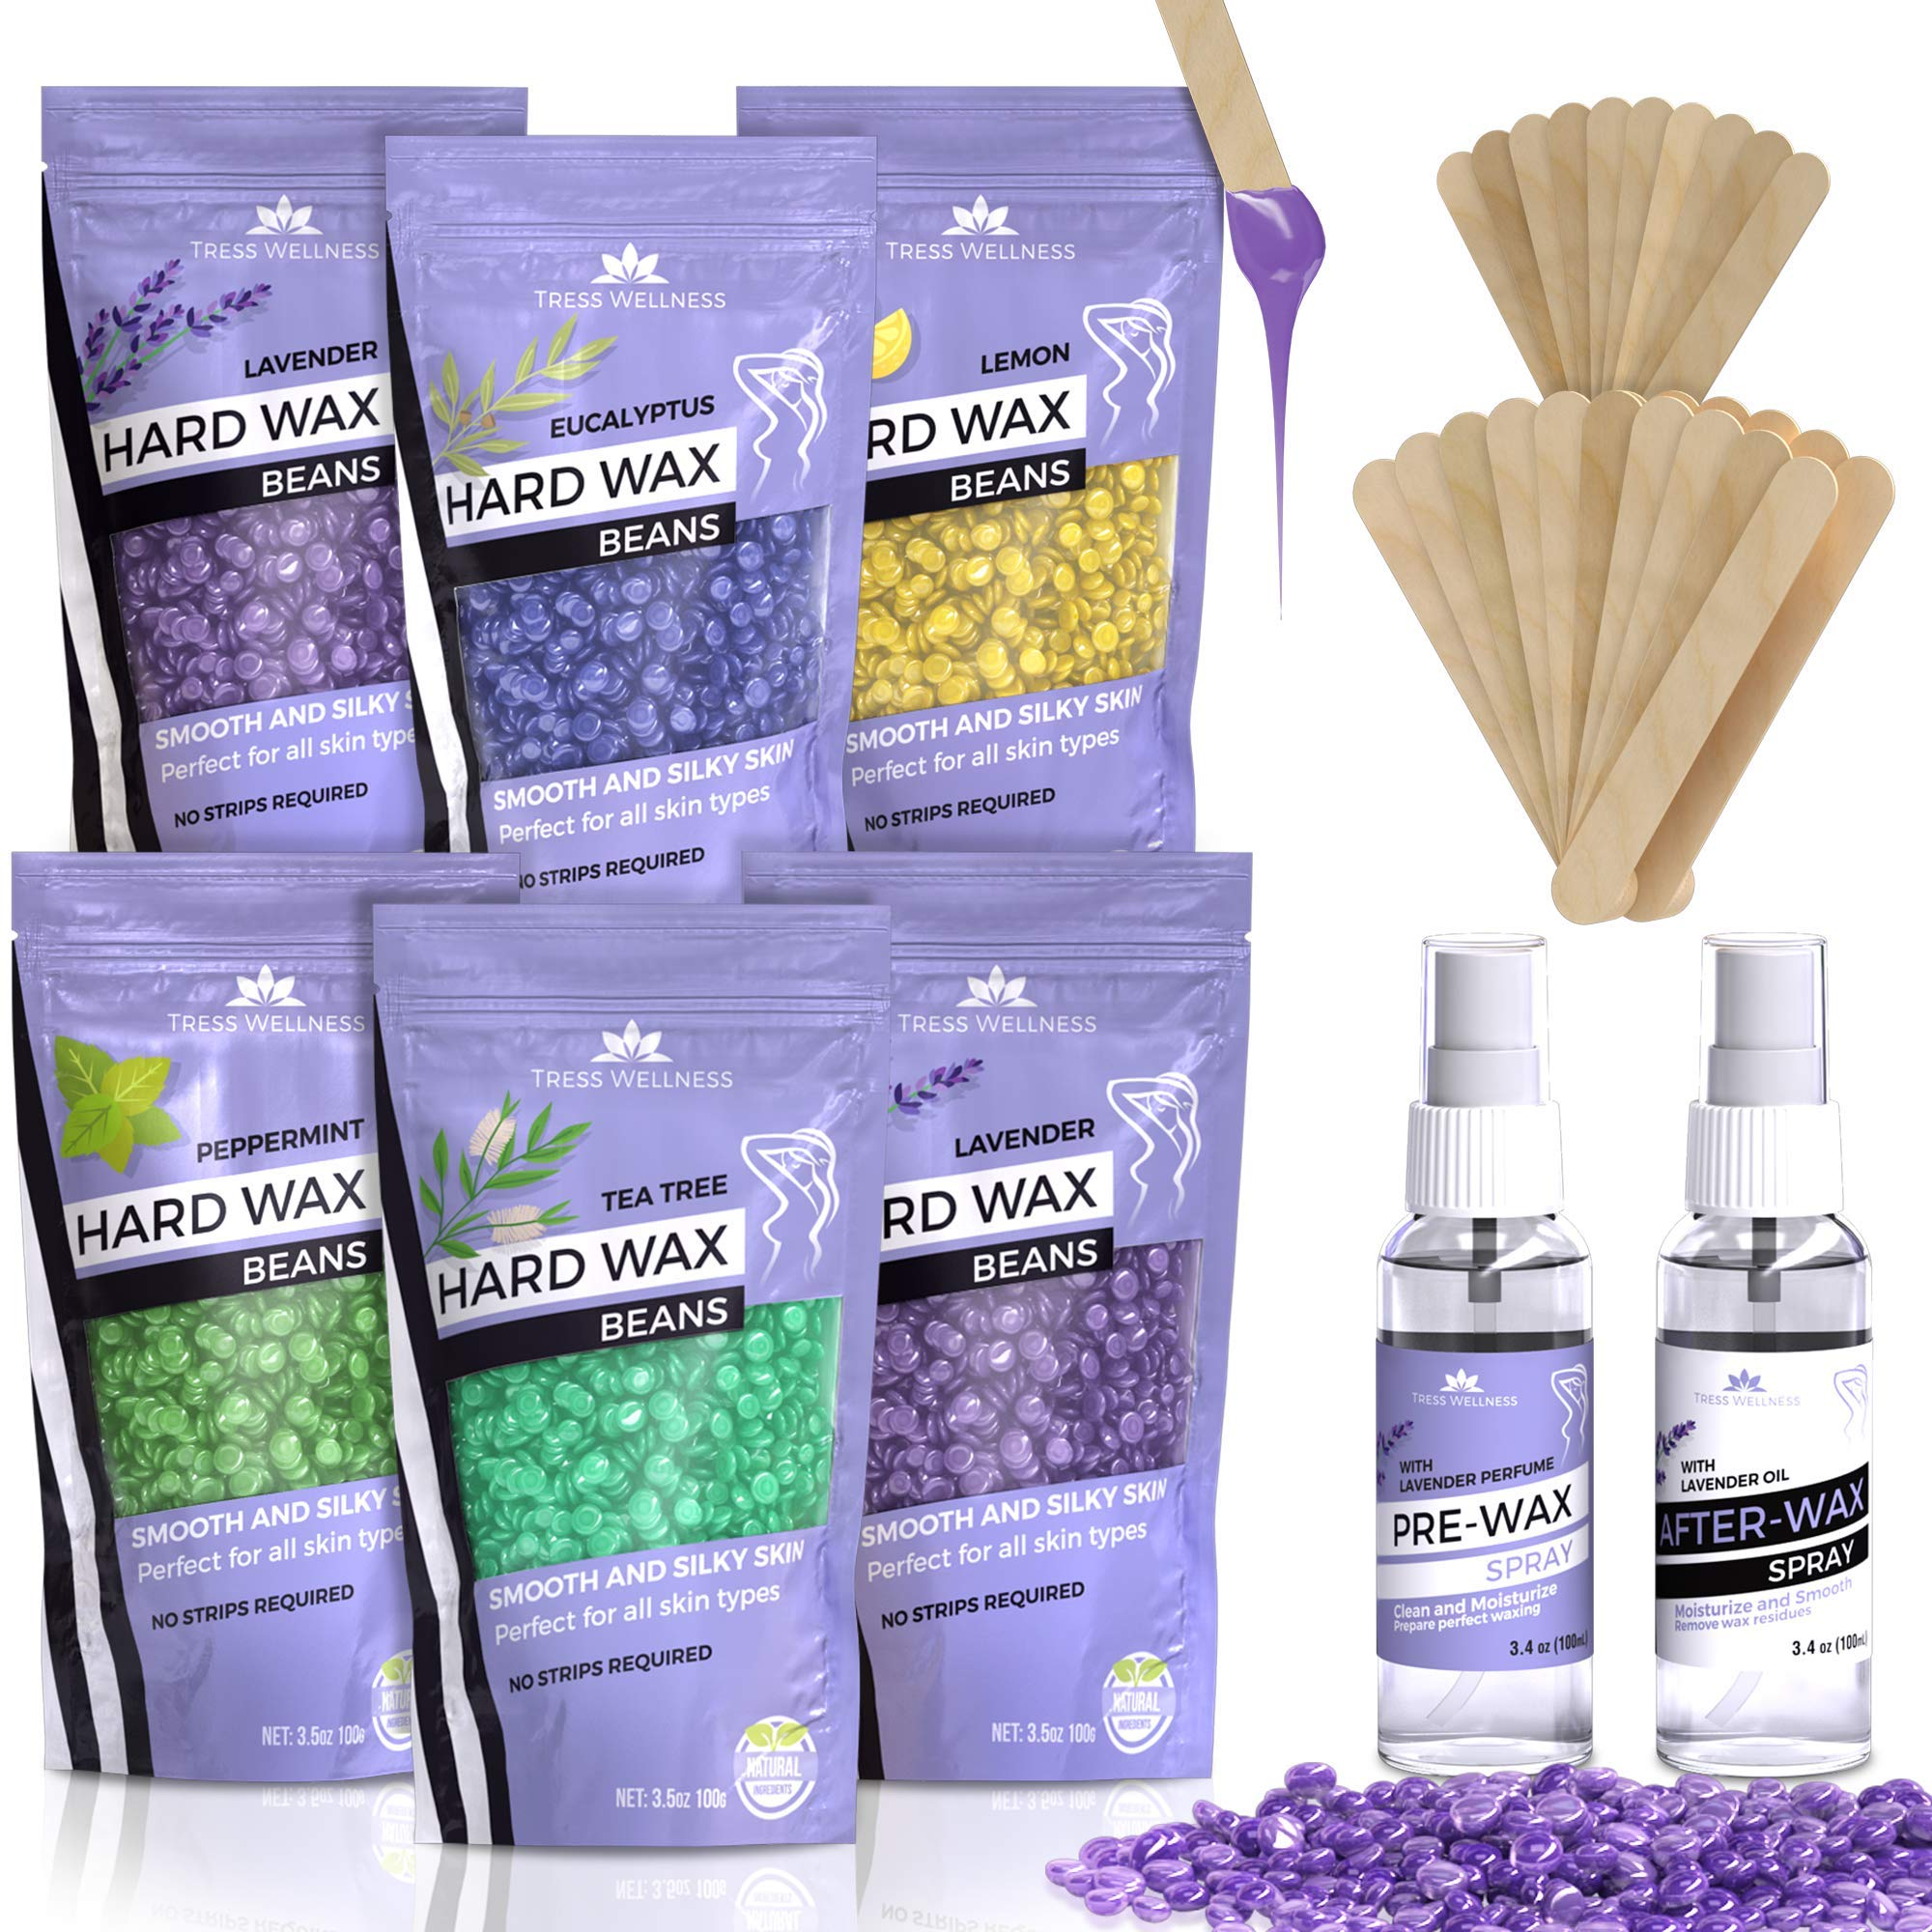 Hair Waxing Strips - Hard Wax Beans [6 Bags + Pre & After Spray] Hard Wax Beads Hair Removal - Waxing Beds